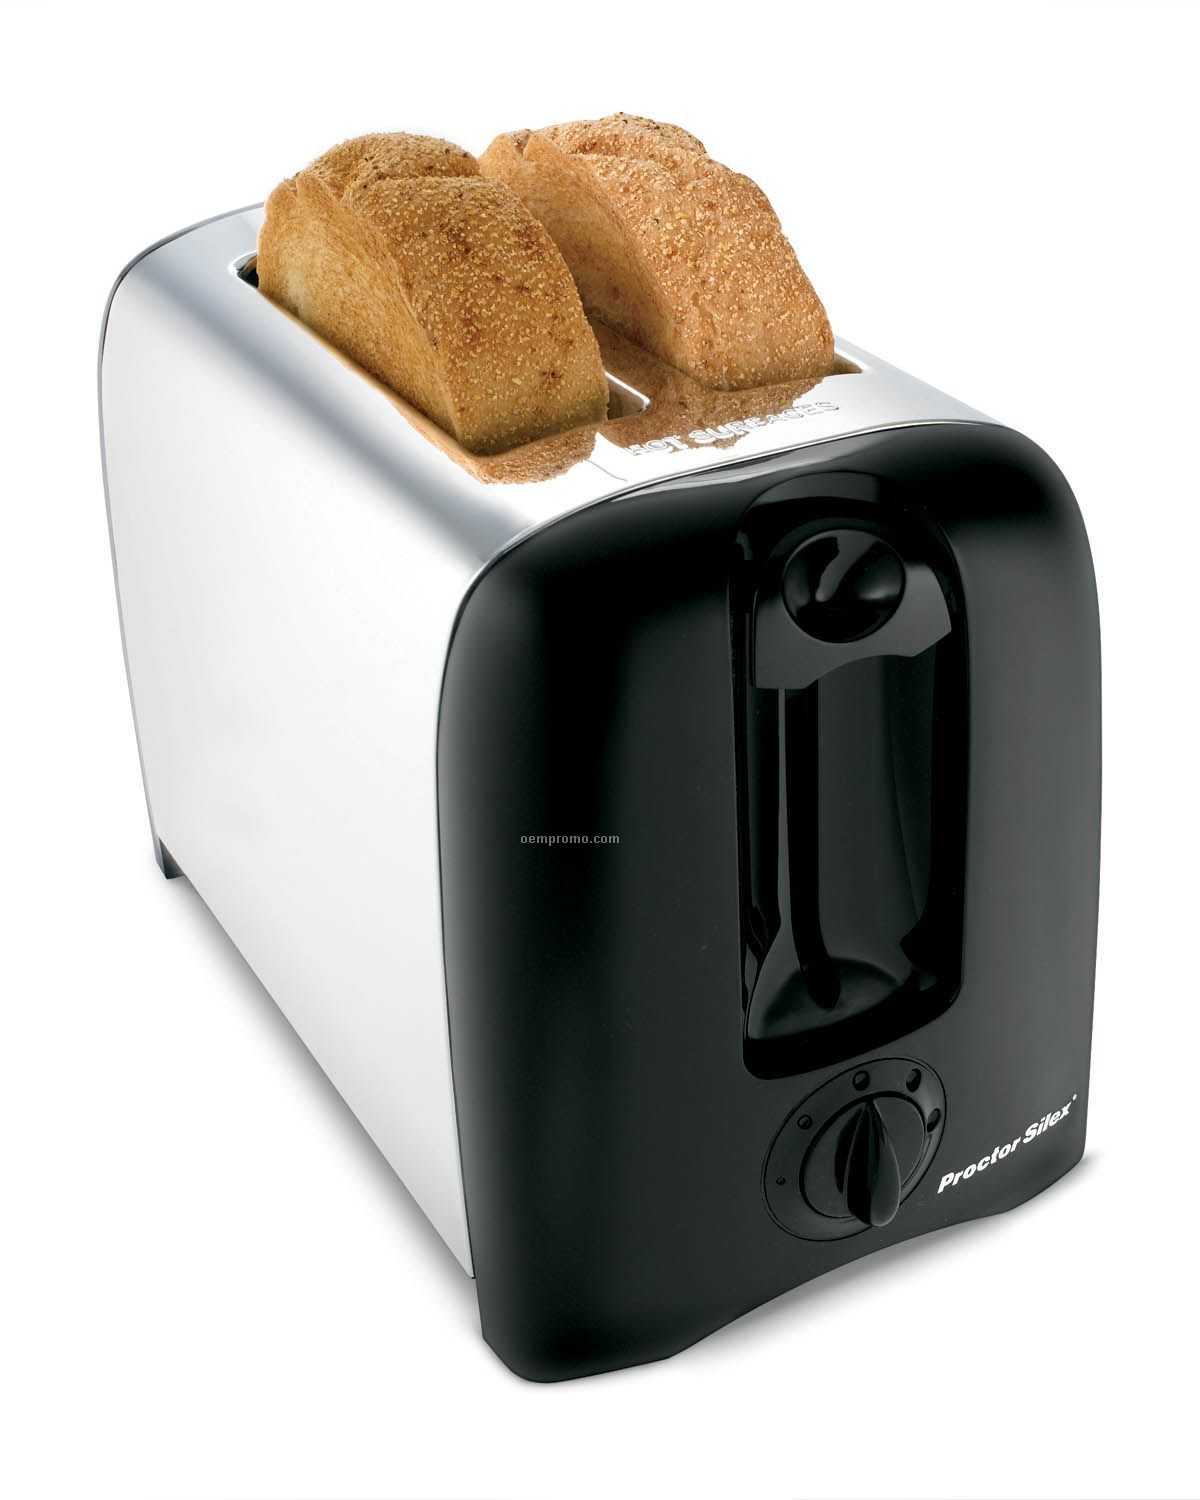 krups semi pro 4 slice toaster stainless china wholesale krups semi pro 4 slice toaster. Black Bedroom Furniture Sets. Home Design Ideas